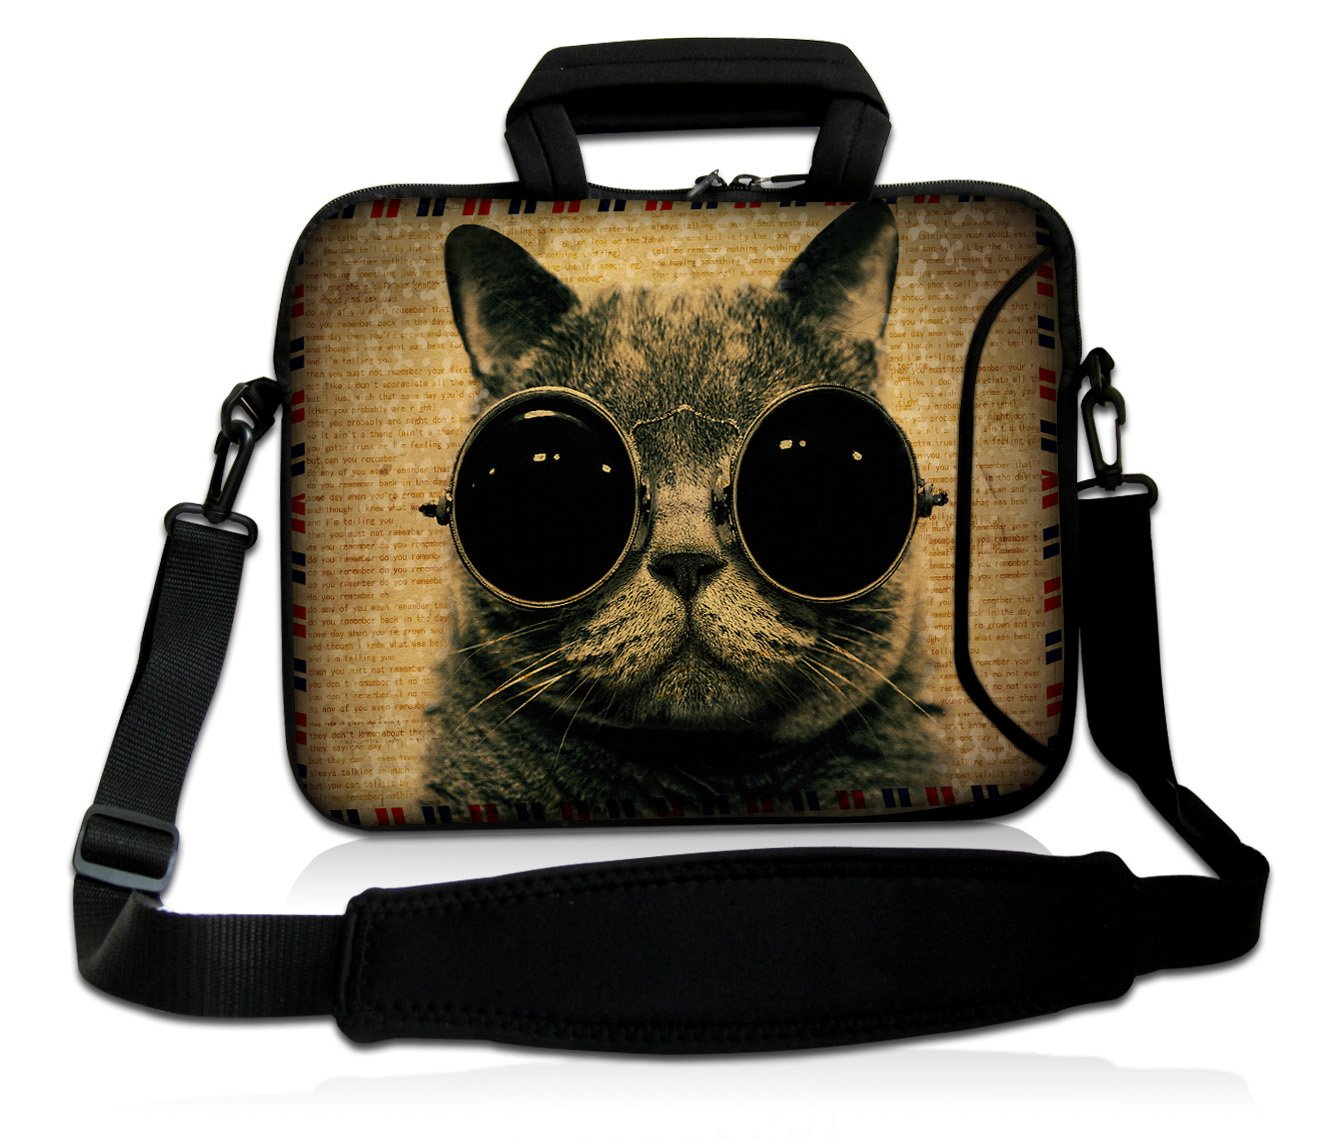 """ToLuLu®Cat Wearing Sunglasses 9.7"""" 10"""" 10.2"""" inch Laptop Netbook Tablet Shoulder Case Carrying Sleeve bag For Apple iPad/Asus EeePC/Acer Aspire one/Dell inspiron mini/Samsung N145/Lenovo S205 S10/HP Touchpad Mini 210"""